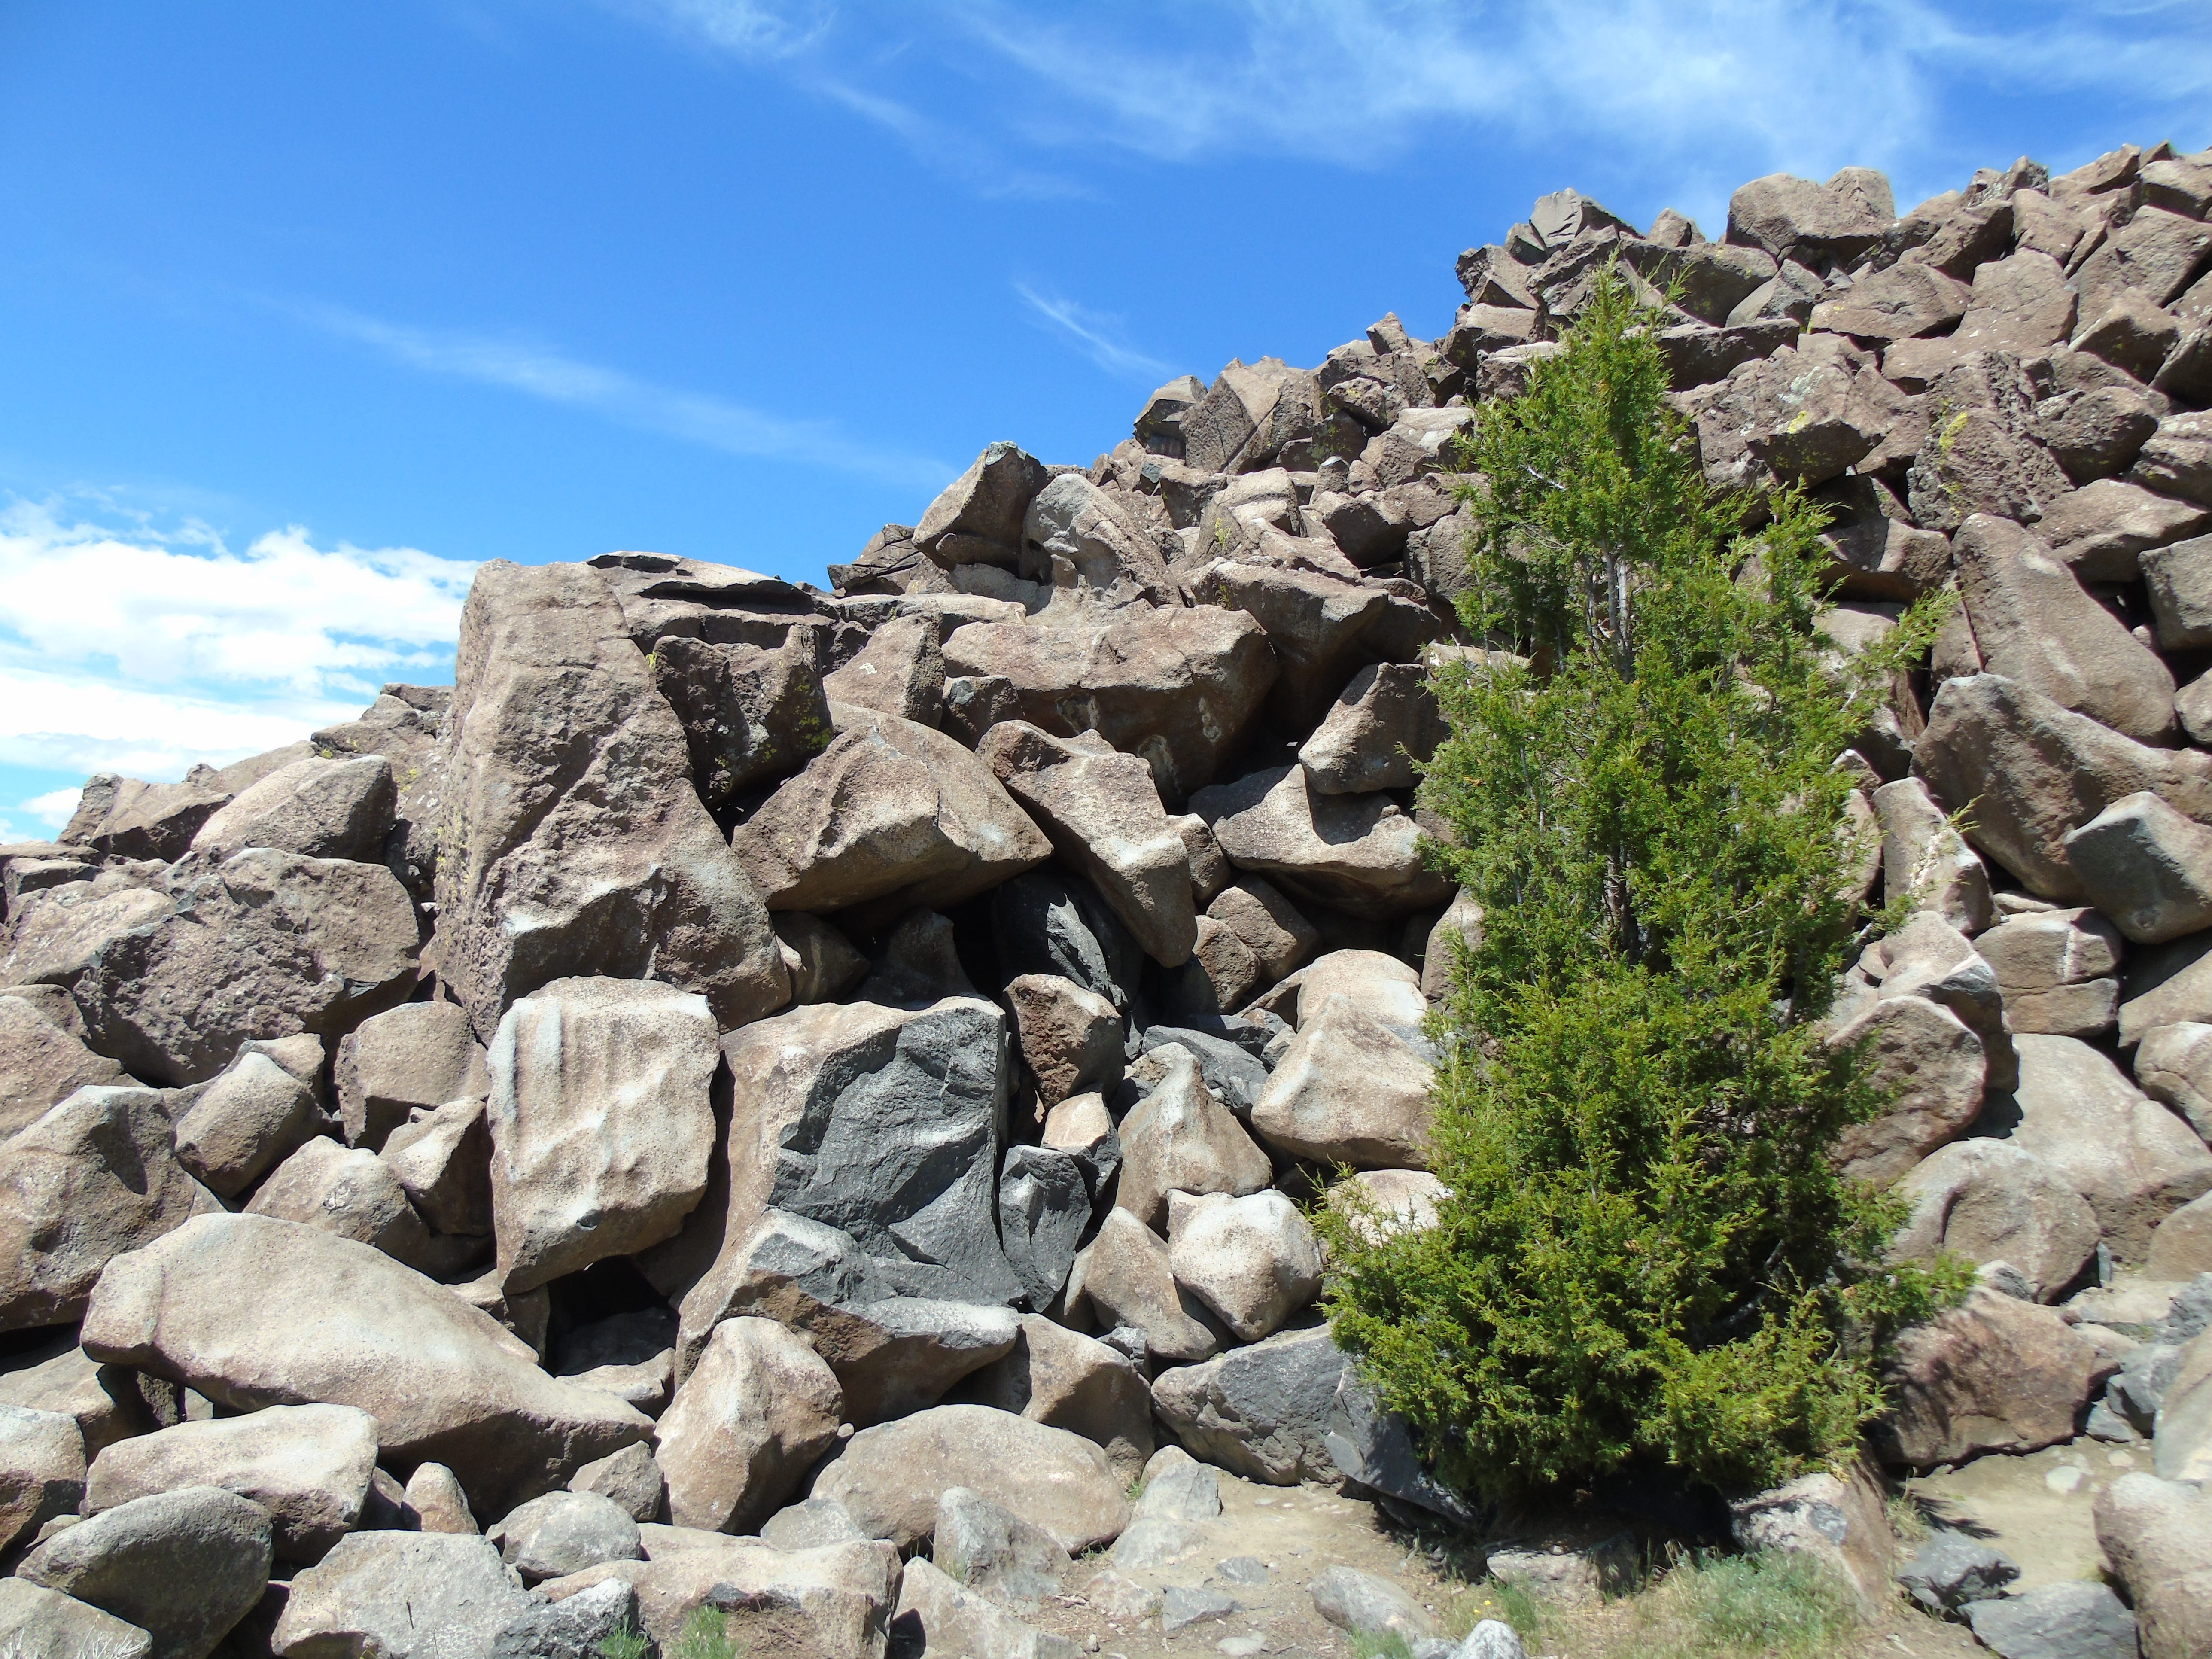 The Ringing Rocks are a can't-miss natural wonder near Butte. The rocks ring in different tones when struck by a hammer.